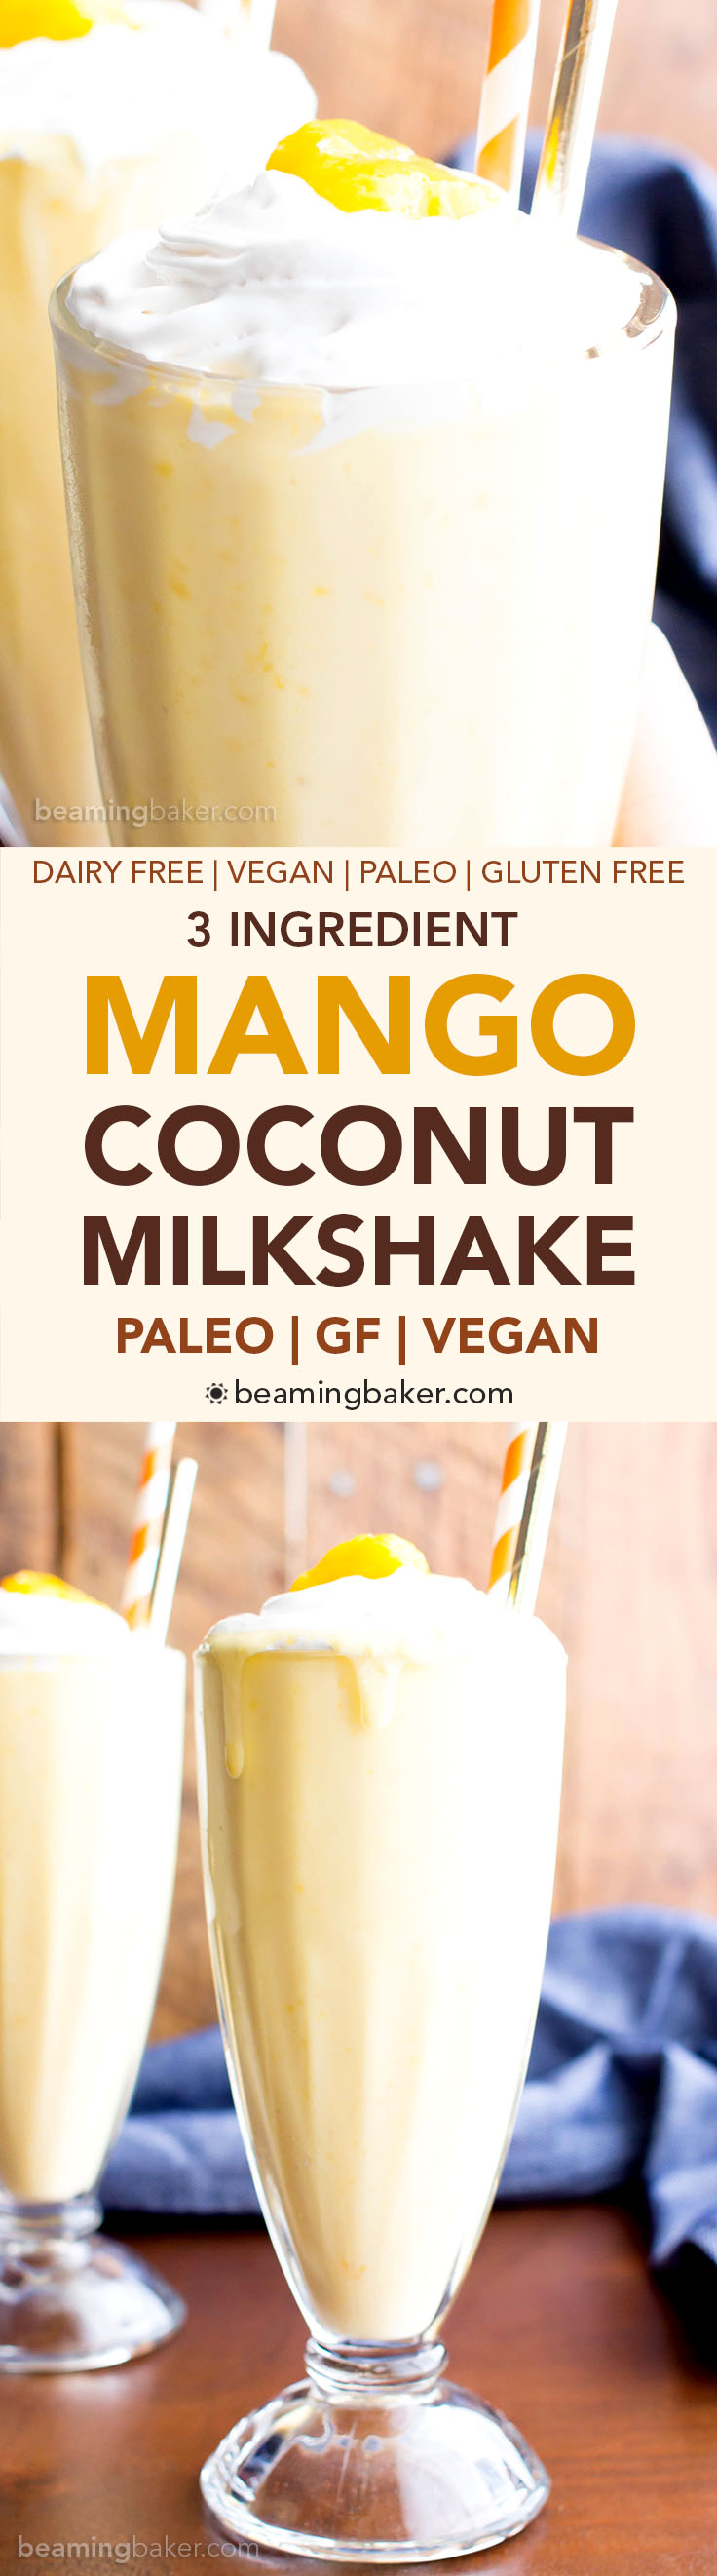 3 Ingredient Mango Coconut Paleo Milkshake (V, GF, Paleo): an easy, 3 ingredient recipe for super thick and frosty mango coconut milkshakes! #Paleo #Vegan #DairyFree #GlutenFree | BeamingBaker.com